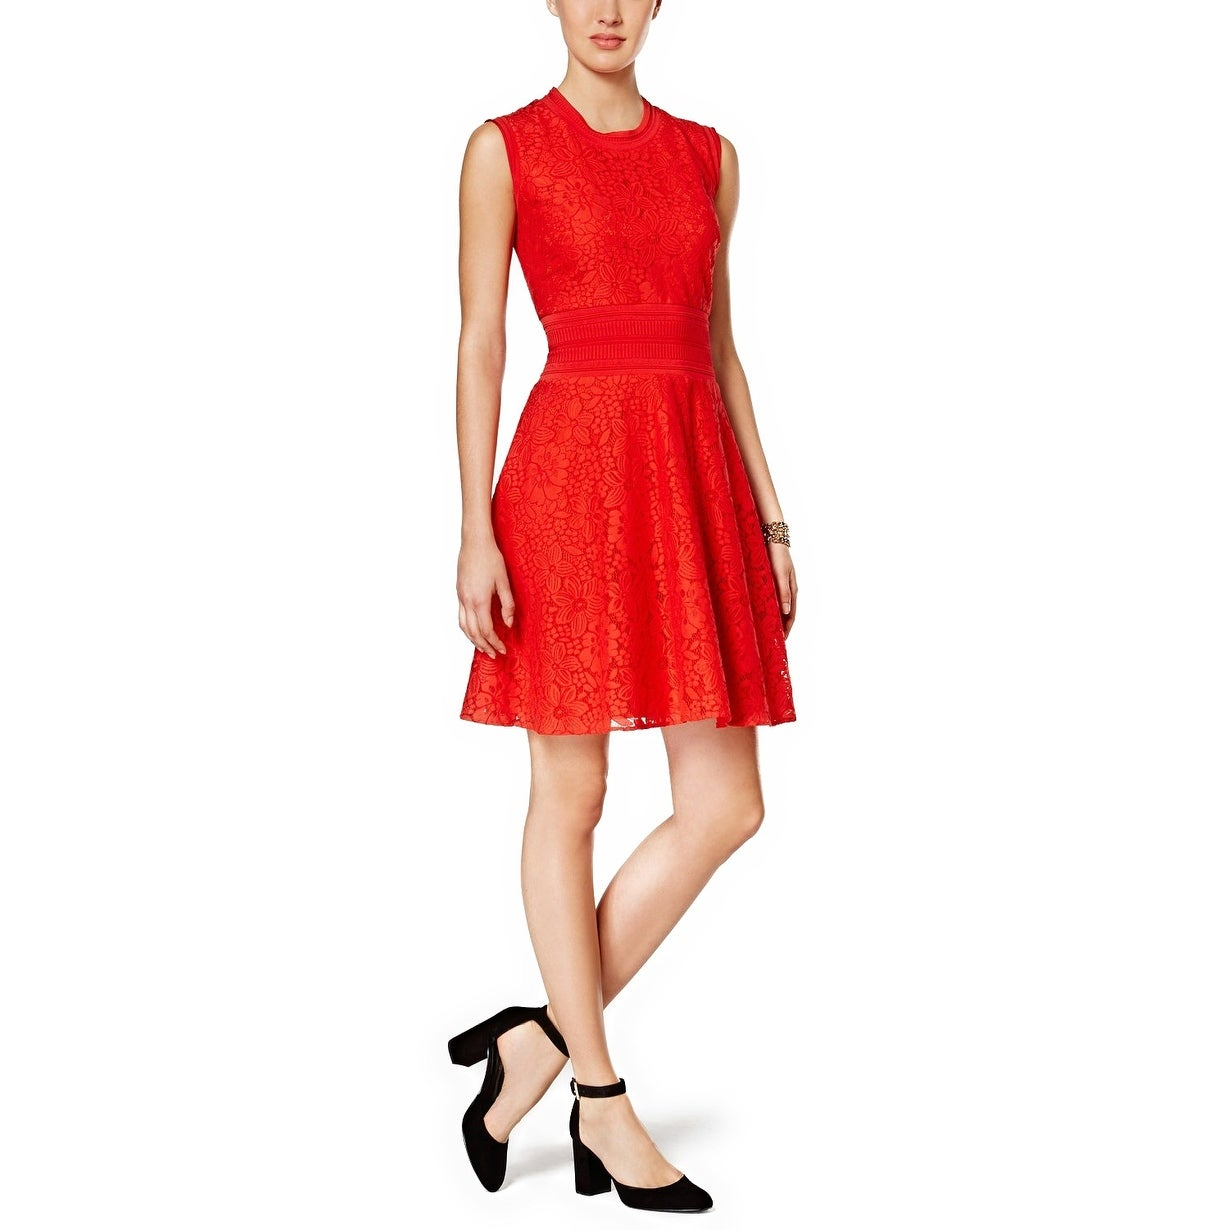 42d0da2fde2dba Shop Tommy Hilfiger Lace Fit Flare Dress - 6 - Free Shipping Today -  Overstock - 20537056